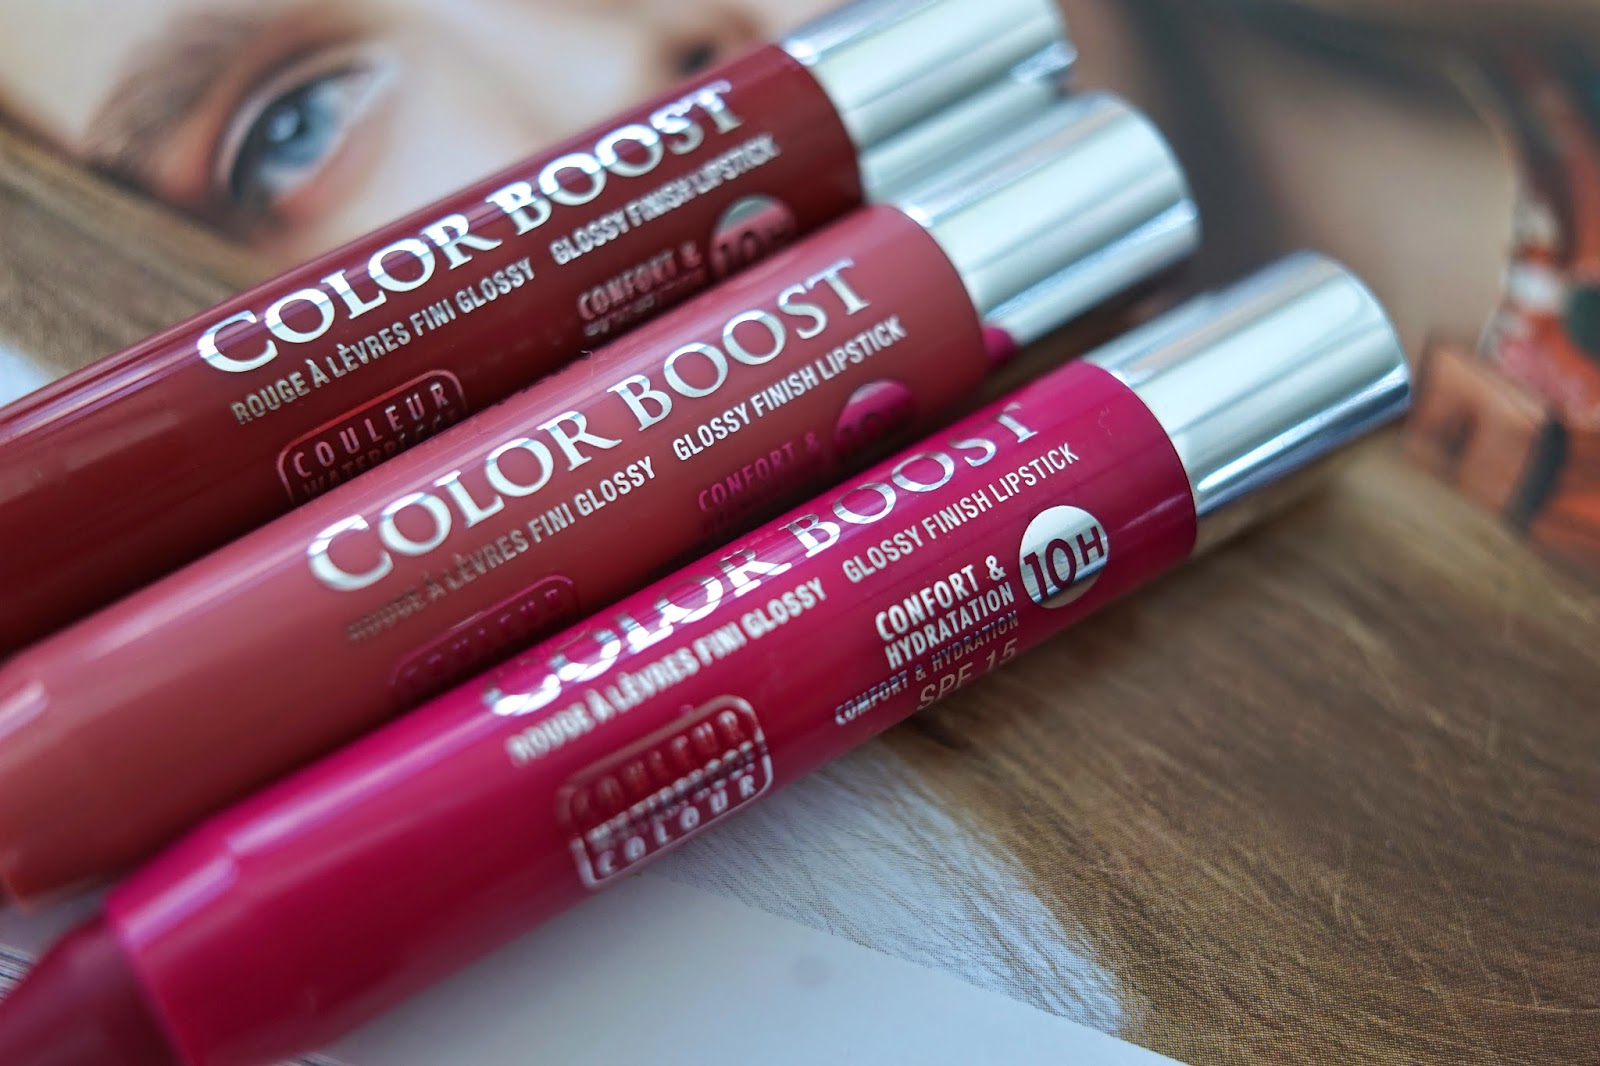 color boost lipsticks bourjois